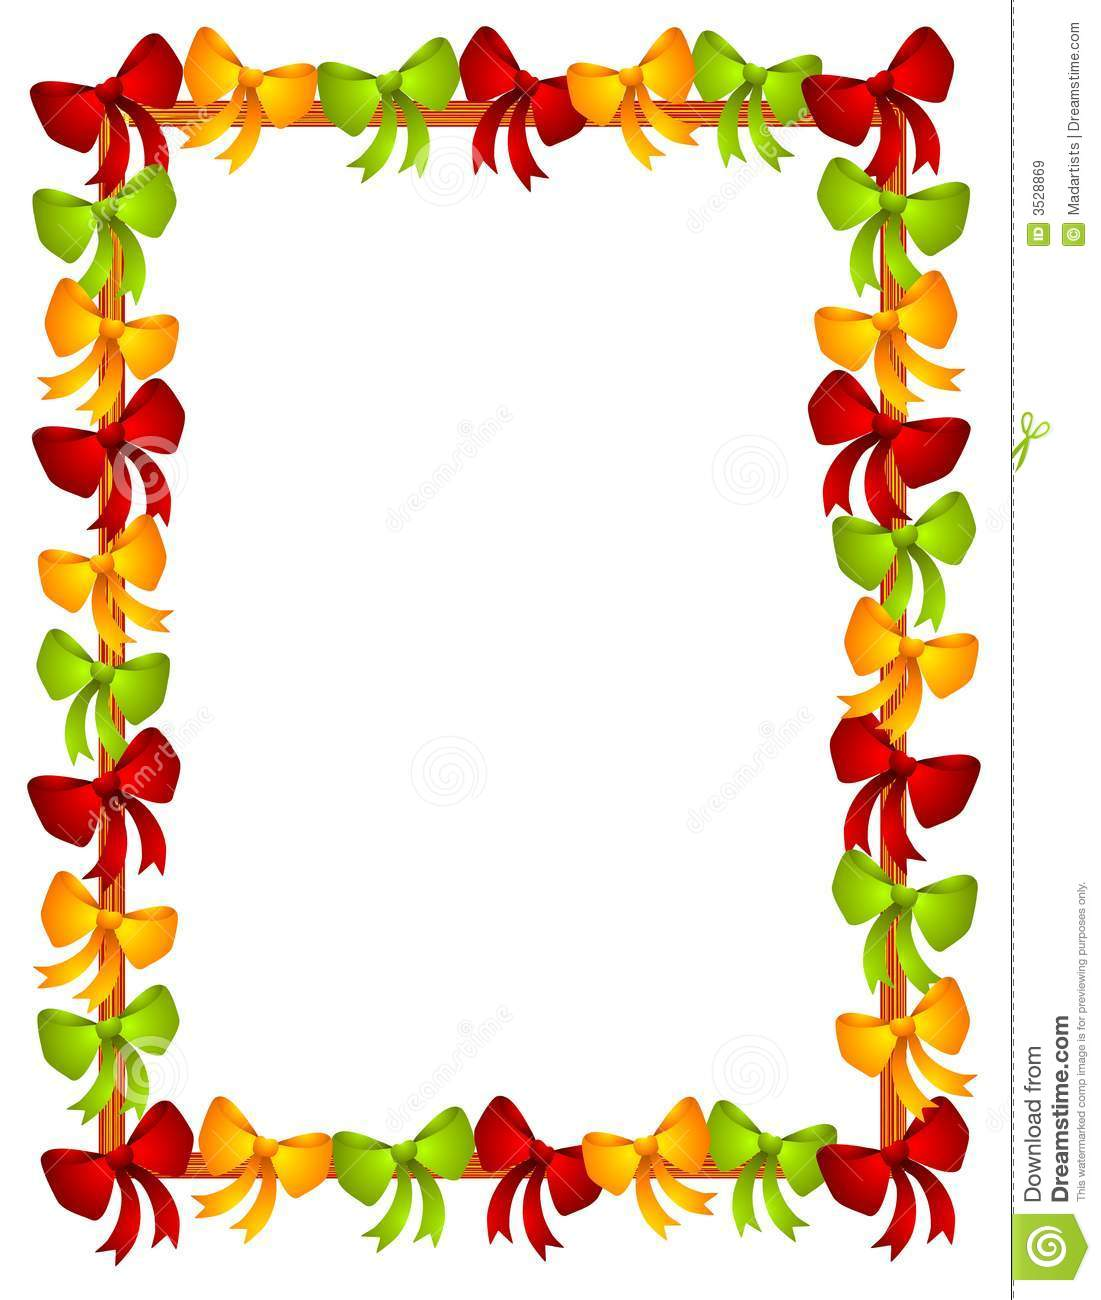 Christmas Borders And Frames .-Christmas Borders And Frames .-17